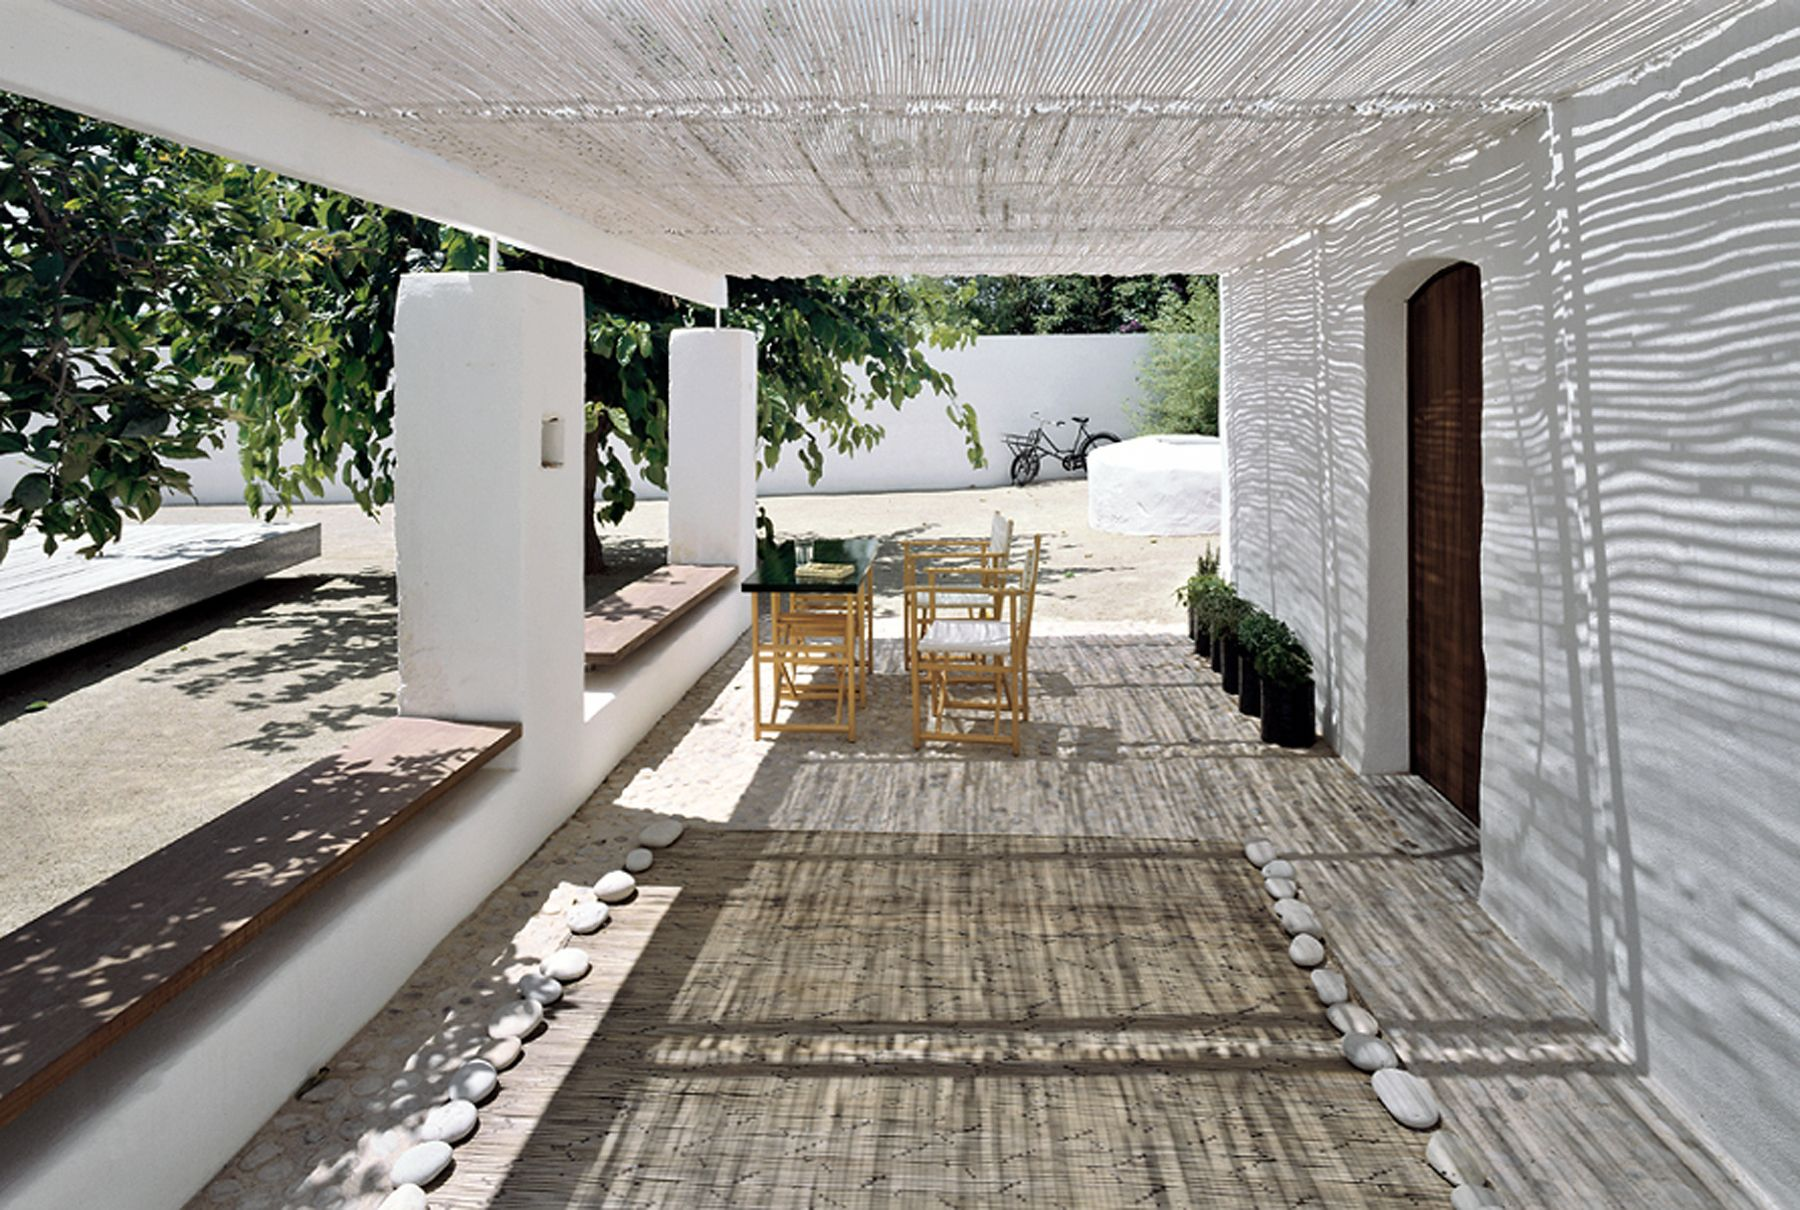 Gallery - House 2 For A Photographer / OAB - 2